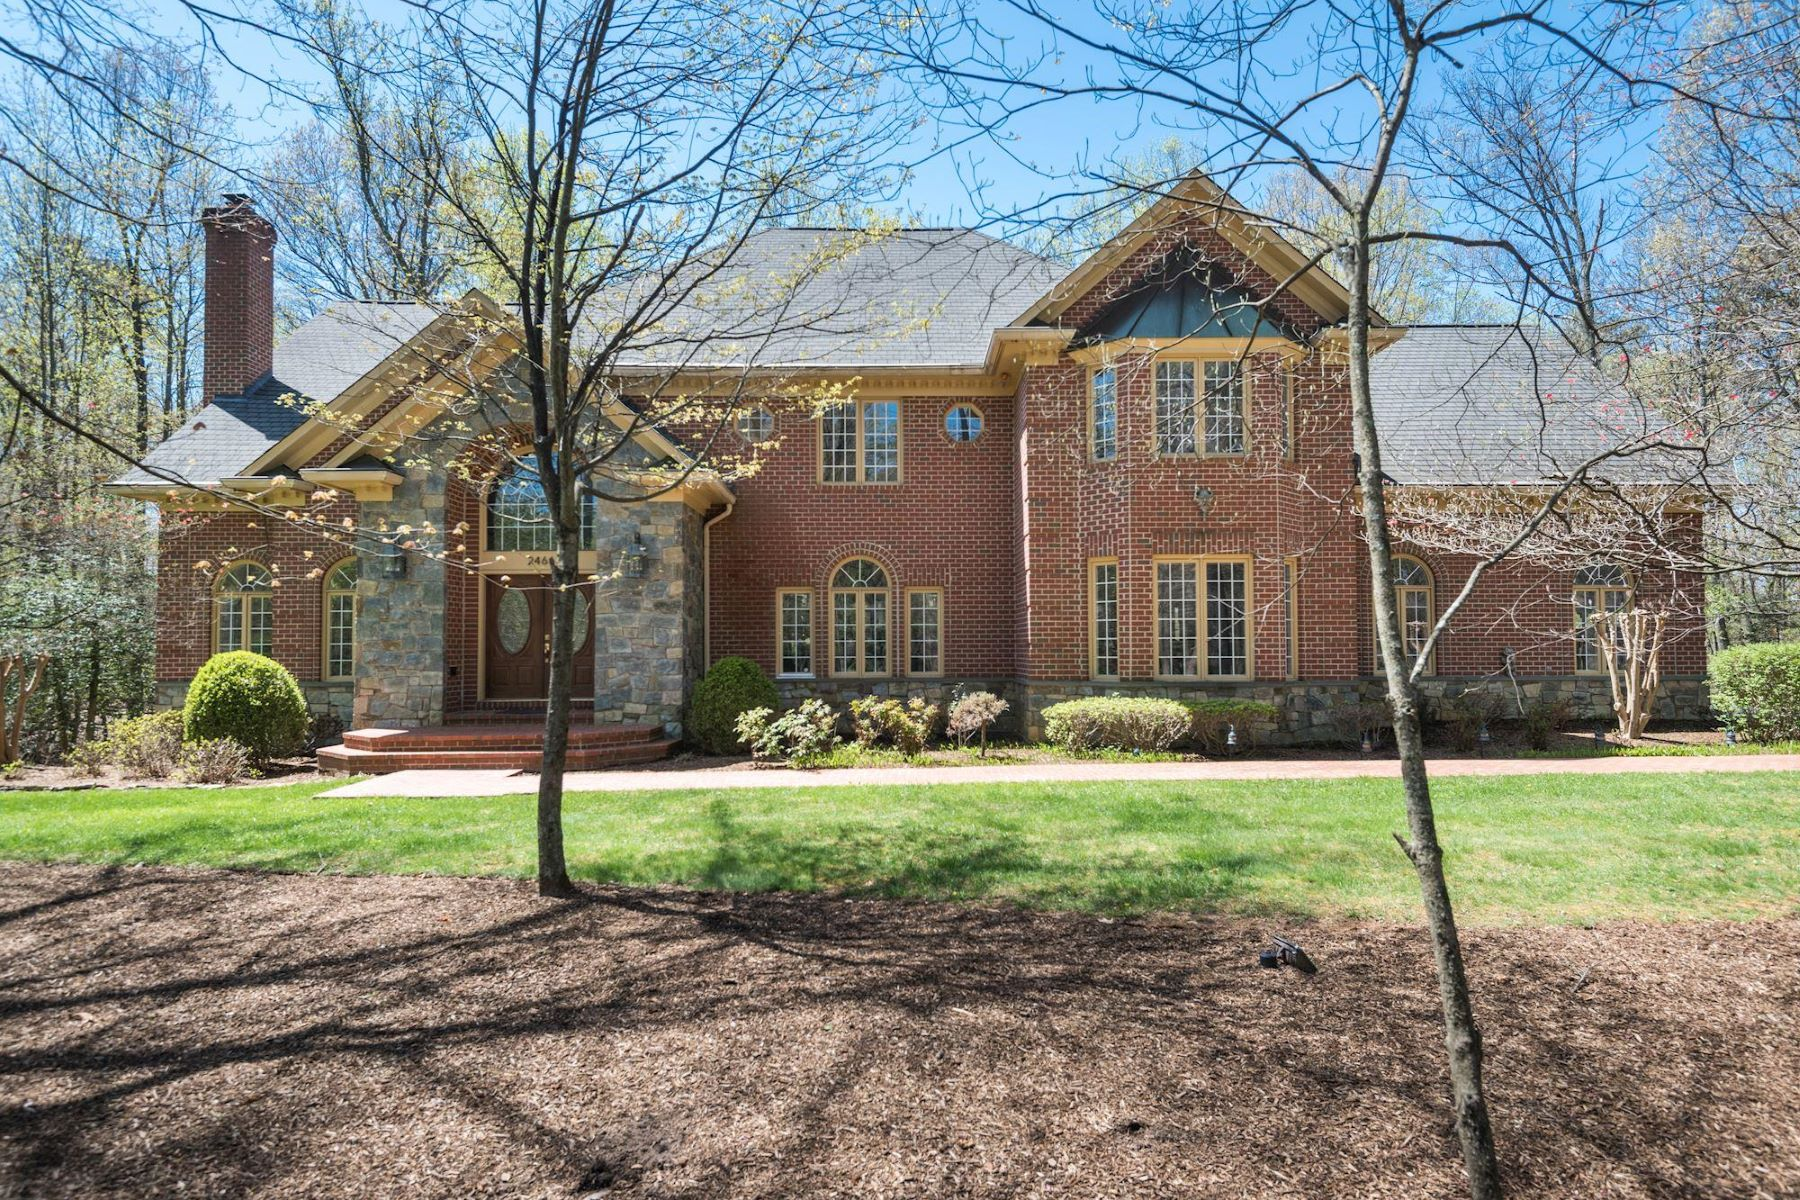 Single Family Home for Sale at 2466 Oakton Hills Drive 2466 Oakton Hills Drive Oakton, Virginia 22124 United States